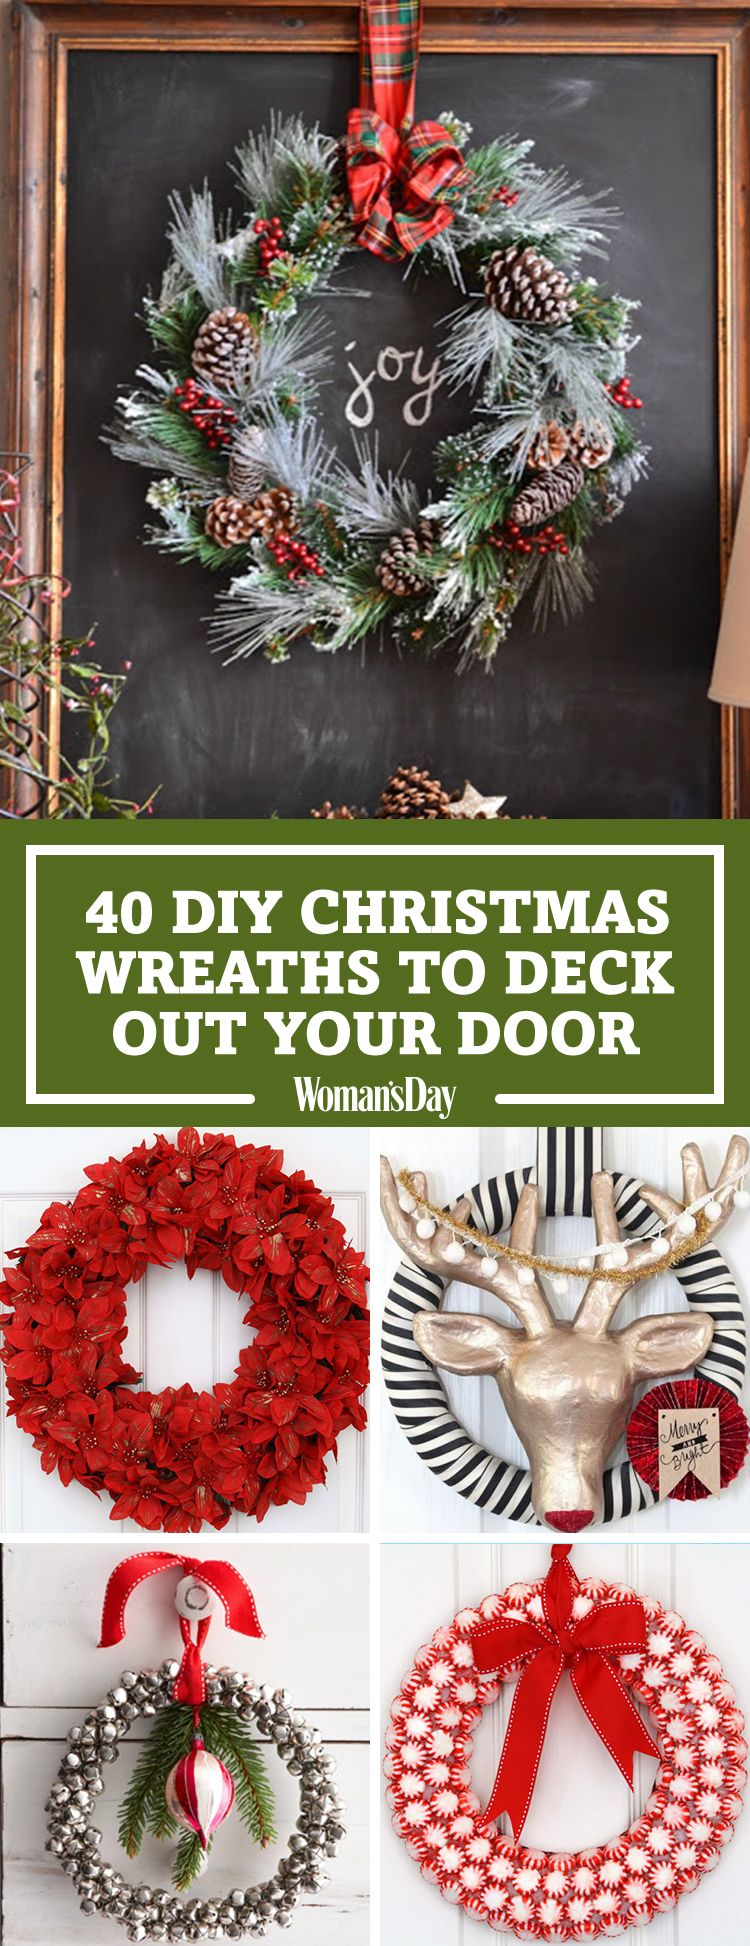 40+ DIY Christmas Wreath Ideas   How To Make A Homemade Holiday Wreath    WomansDay.com